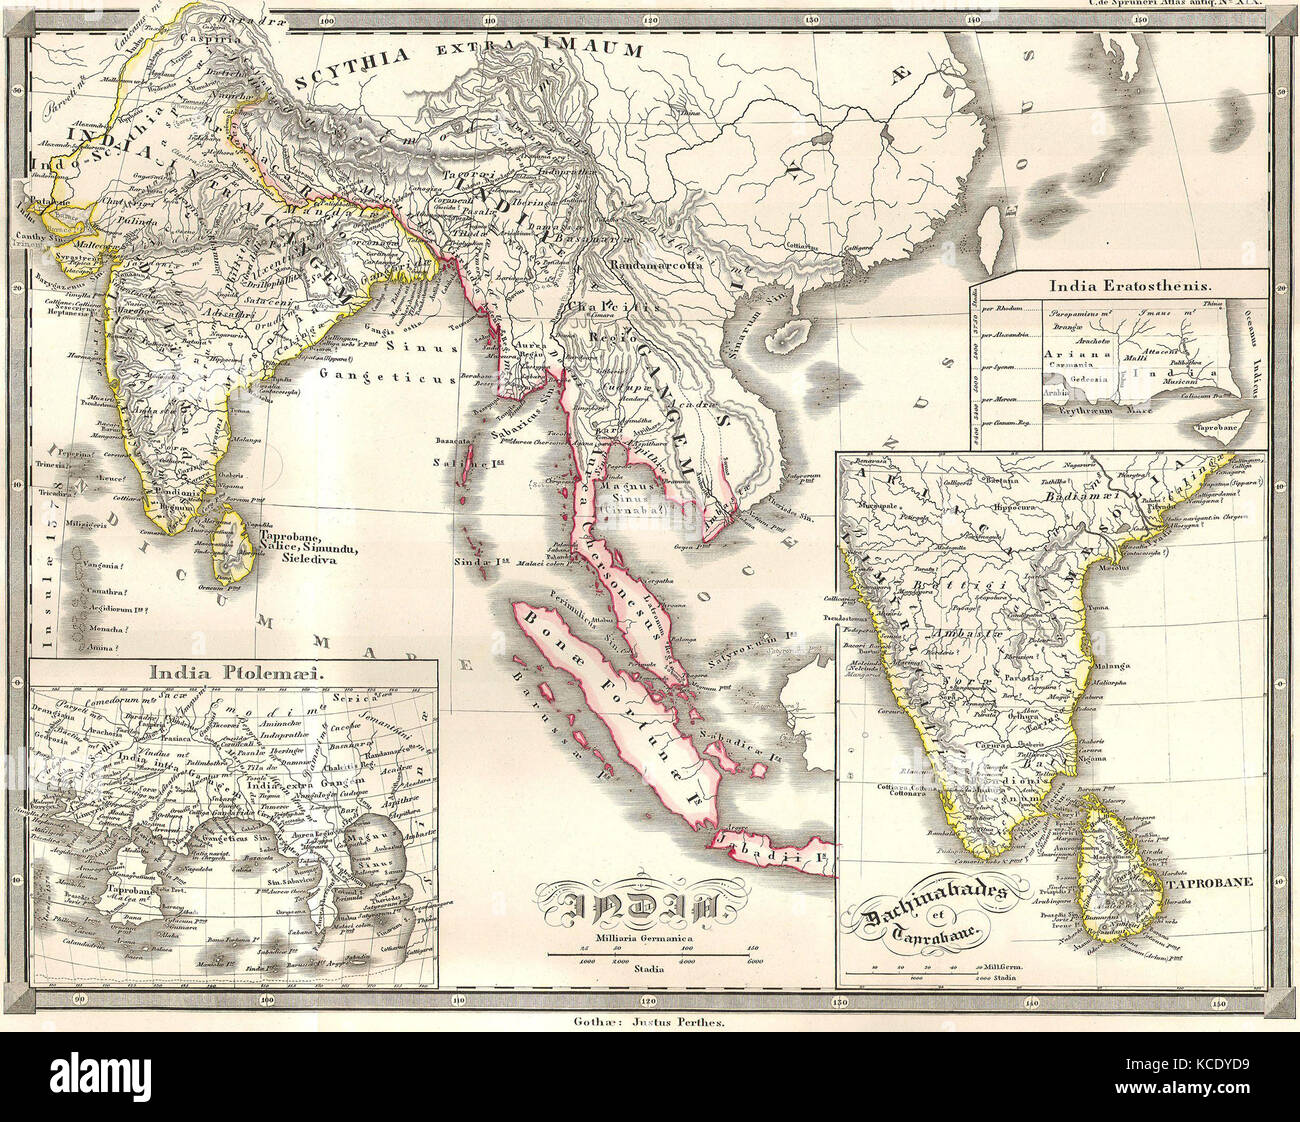 Ancient india map stock photos ancient india map stock images alamy 1855 spruneri map of india and southeast asia in ancient times stock image gumiabroncs Choice Image